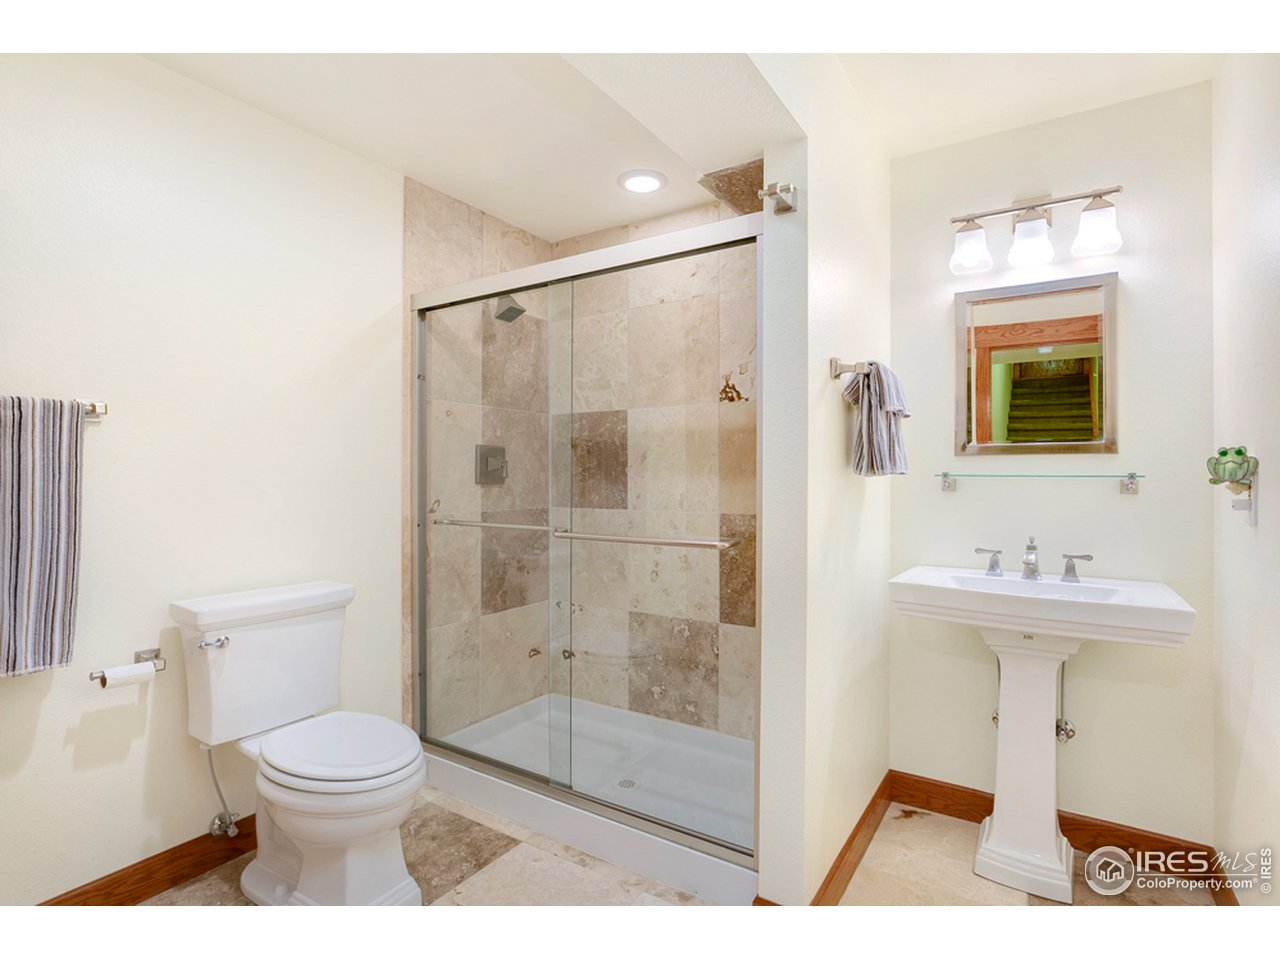 Great sized basement bathroom with Travertine tile